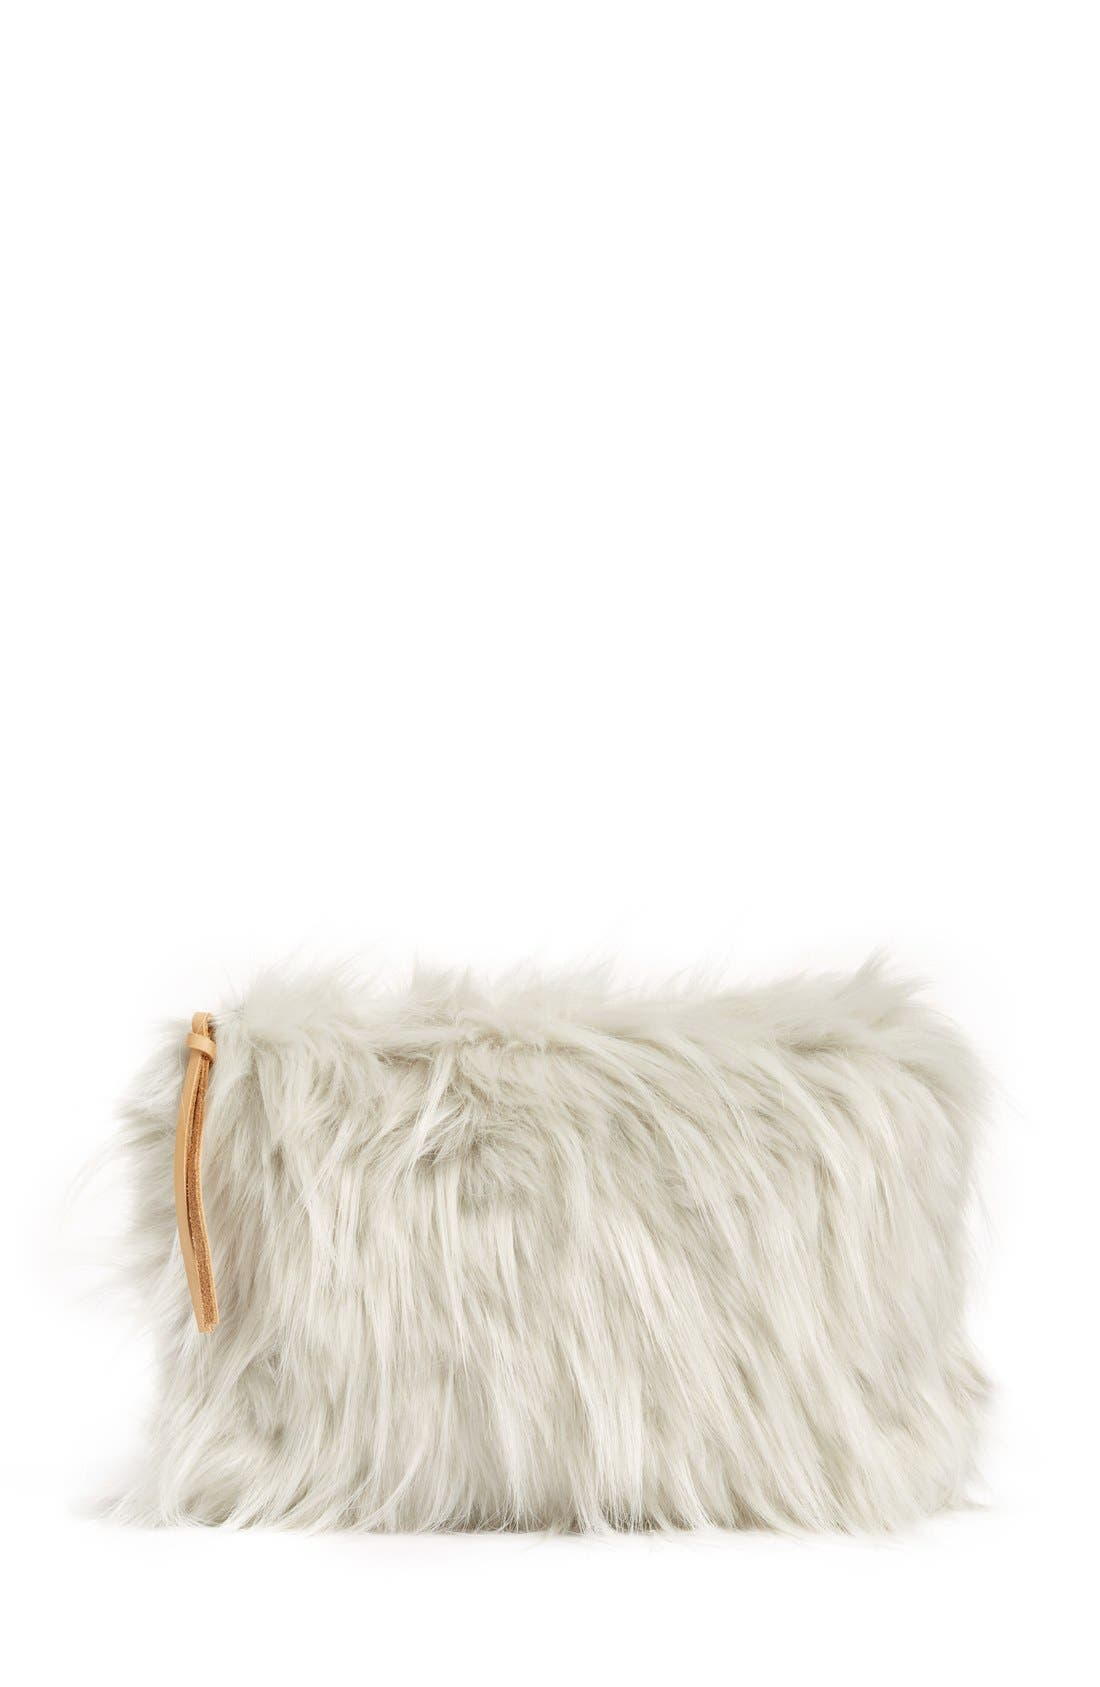 NORDSTROM AT HOME, Cuddle Up Faux Fur Pouch, Main thumbnail 1, color, 030